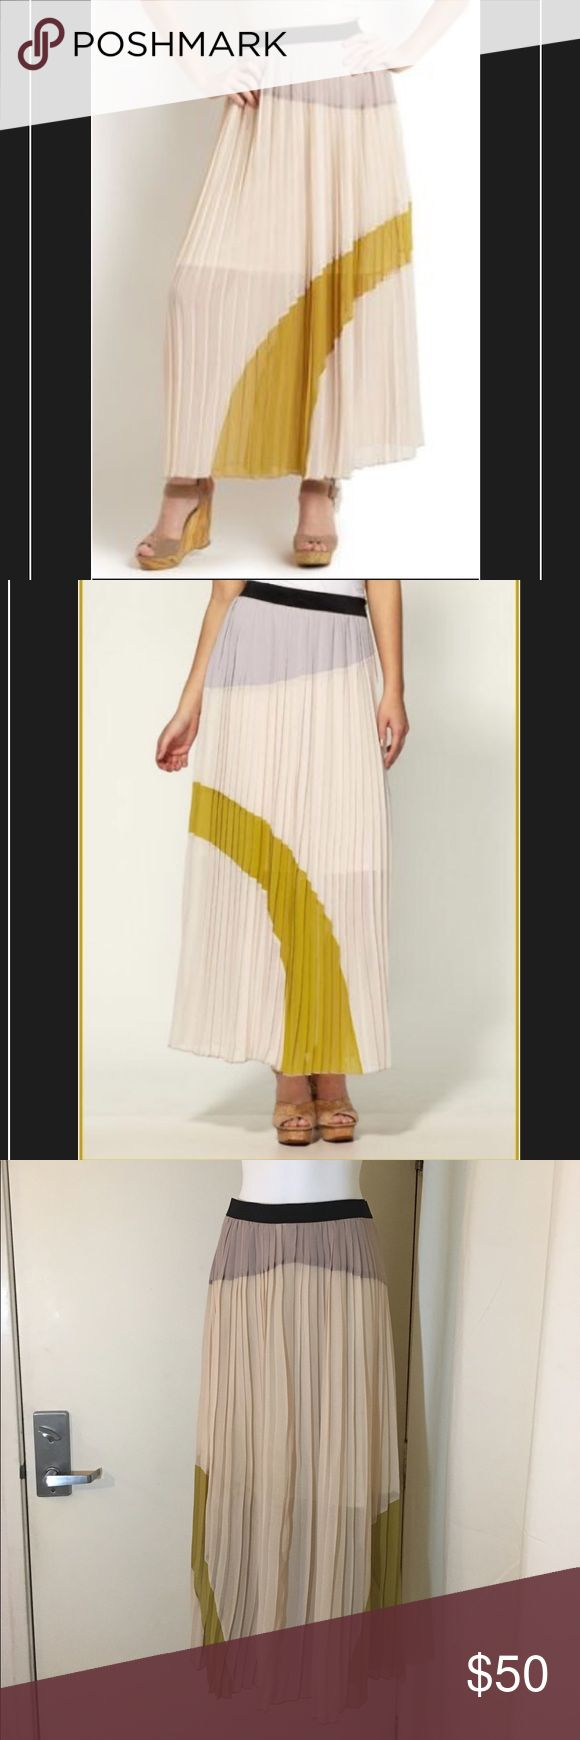 ARYN K LONG PLEATED CHIFFON MAXI SKIRT This ARYN K LONG PLEATED CHIFFON MAXI SKIRT is in new condition. Flirty and fun, Aryn K skirts are just the right amount of elegant and playful. These skirts are flattering stylish & effortlessly chic whether styled up or down. This scene-stealing style features precision pleating on a sweeping, maxi silhouette. Polyester; lining: polyester/elastane Designed for a contemporary fit Banded waist, allover landscape print and pleating Ankle length, exposed…